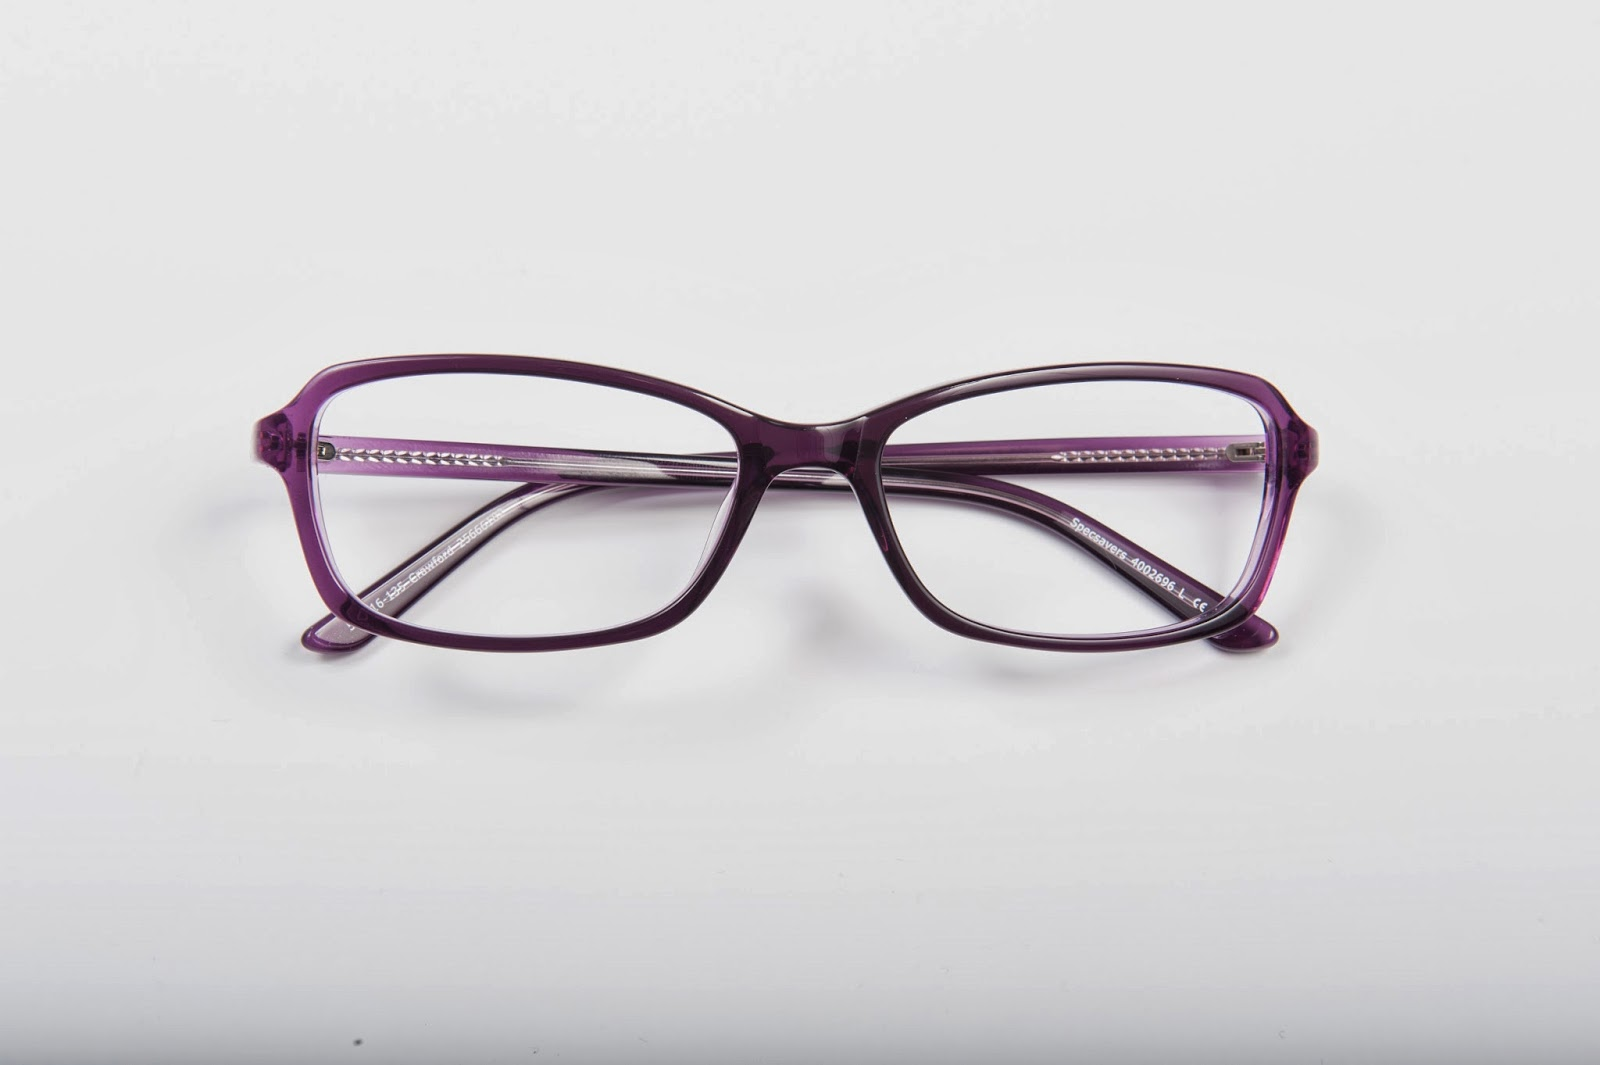 2109b80d04 Specsavers has got a rainbow of colours for its frames. The Crawford ones  with my favourite purple are £ 69.00 and they are part of the offer 2 for 1  so in ...